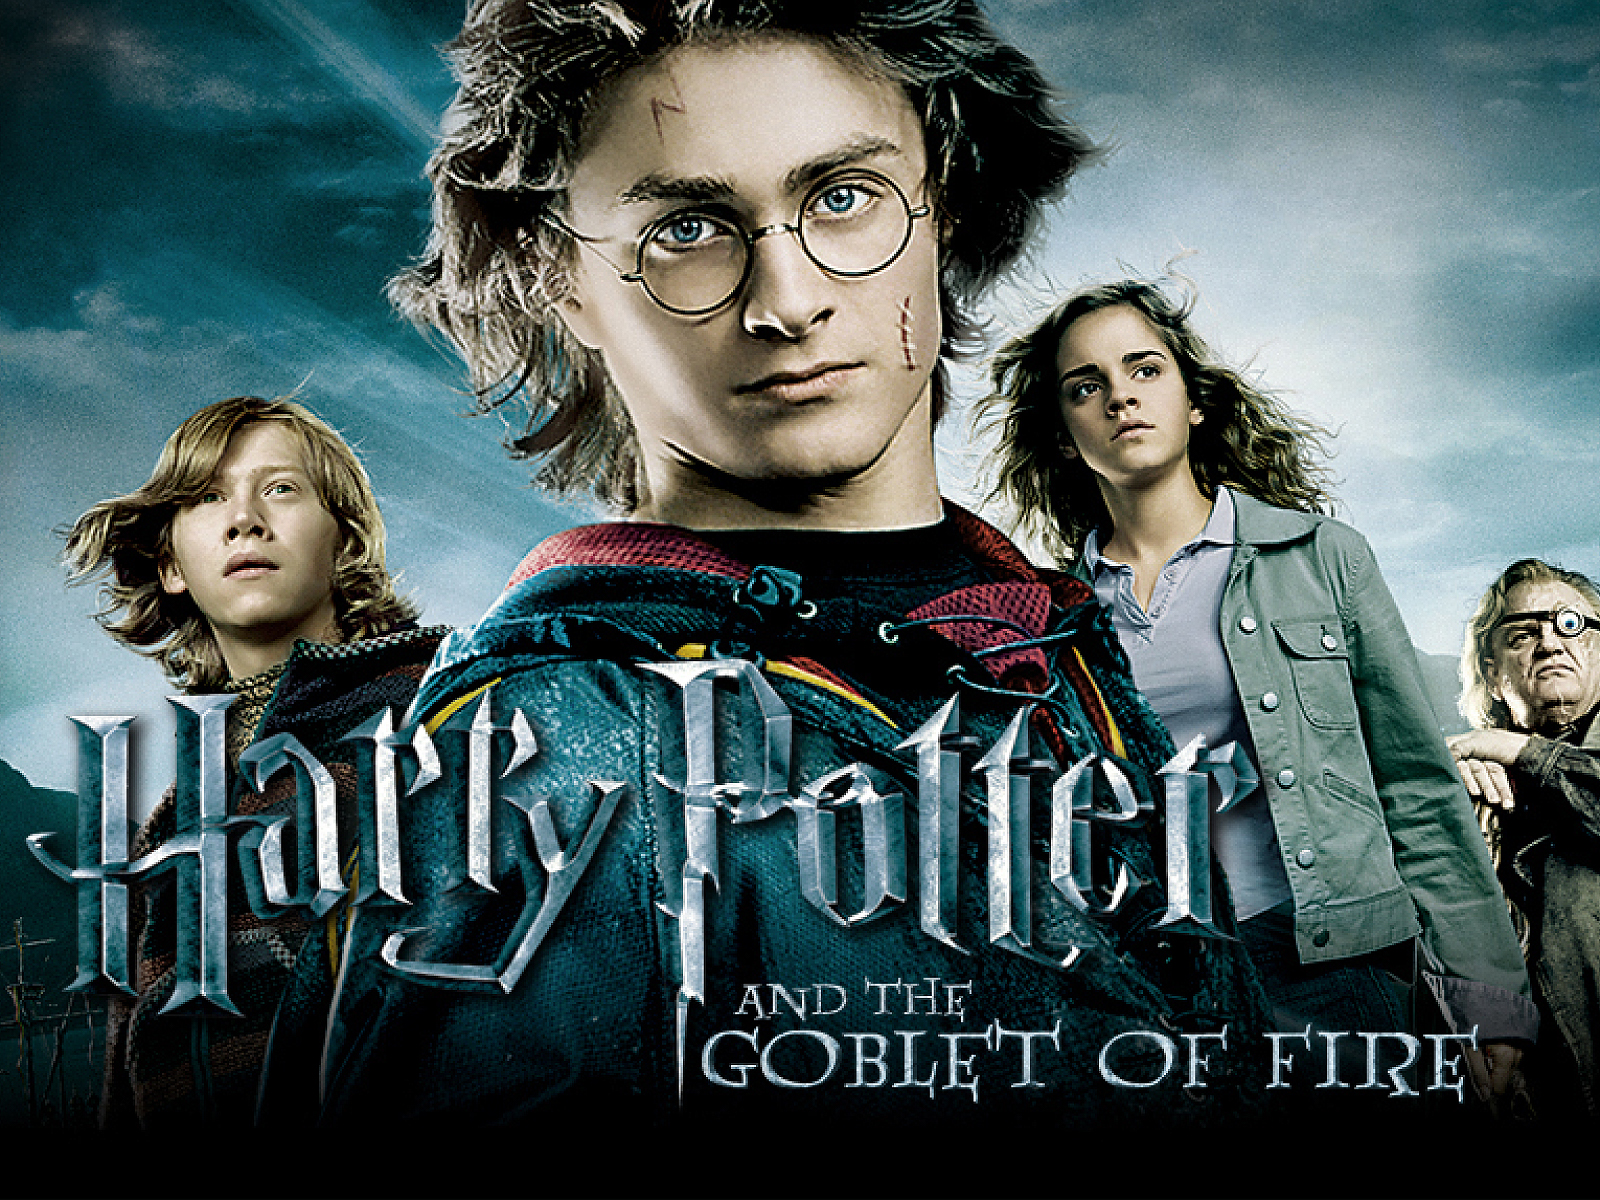 Based on JK Rowling's fourth book, this film is the heart of the phenomenal Harry Potter series…